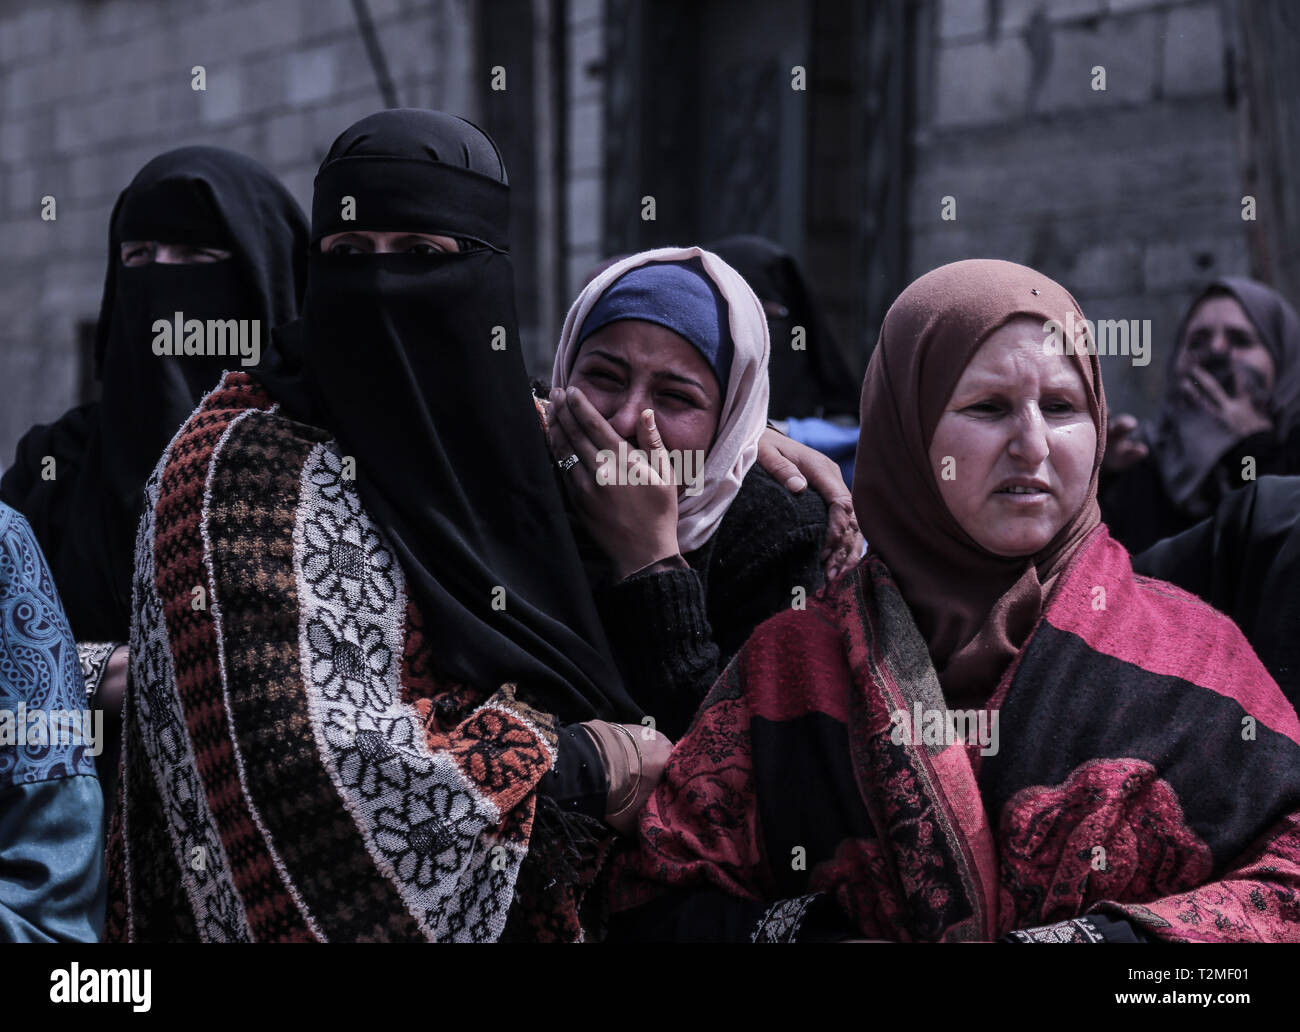 Relatives of the deceased are seen mourning during the funeral ceremony of Faris Abu Hijras, 26, who was killed by Israeli troops east of Khuza'a near the Israeli-Gaza border during the Palestinian Land Day demonstrations. - Stock Image